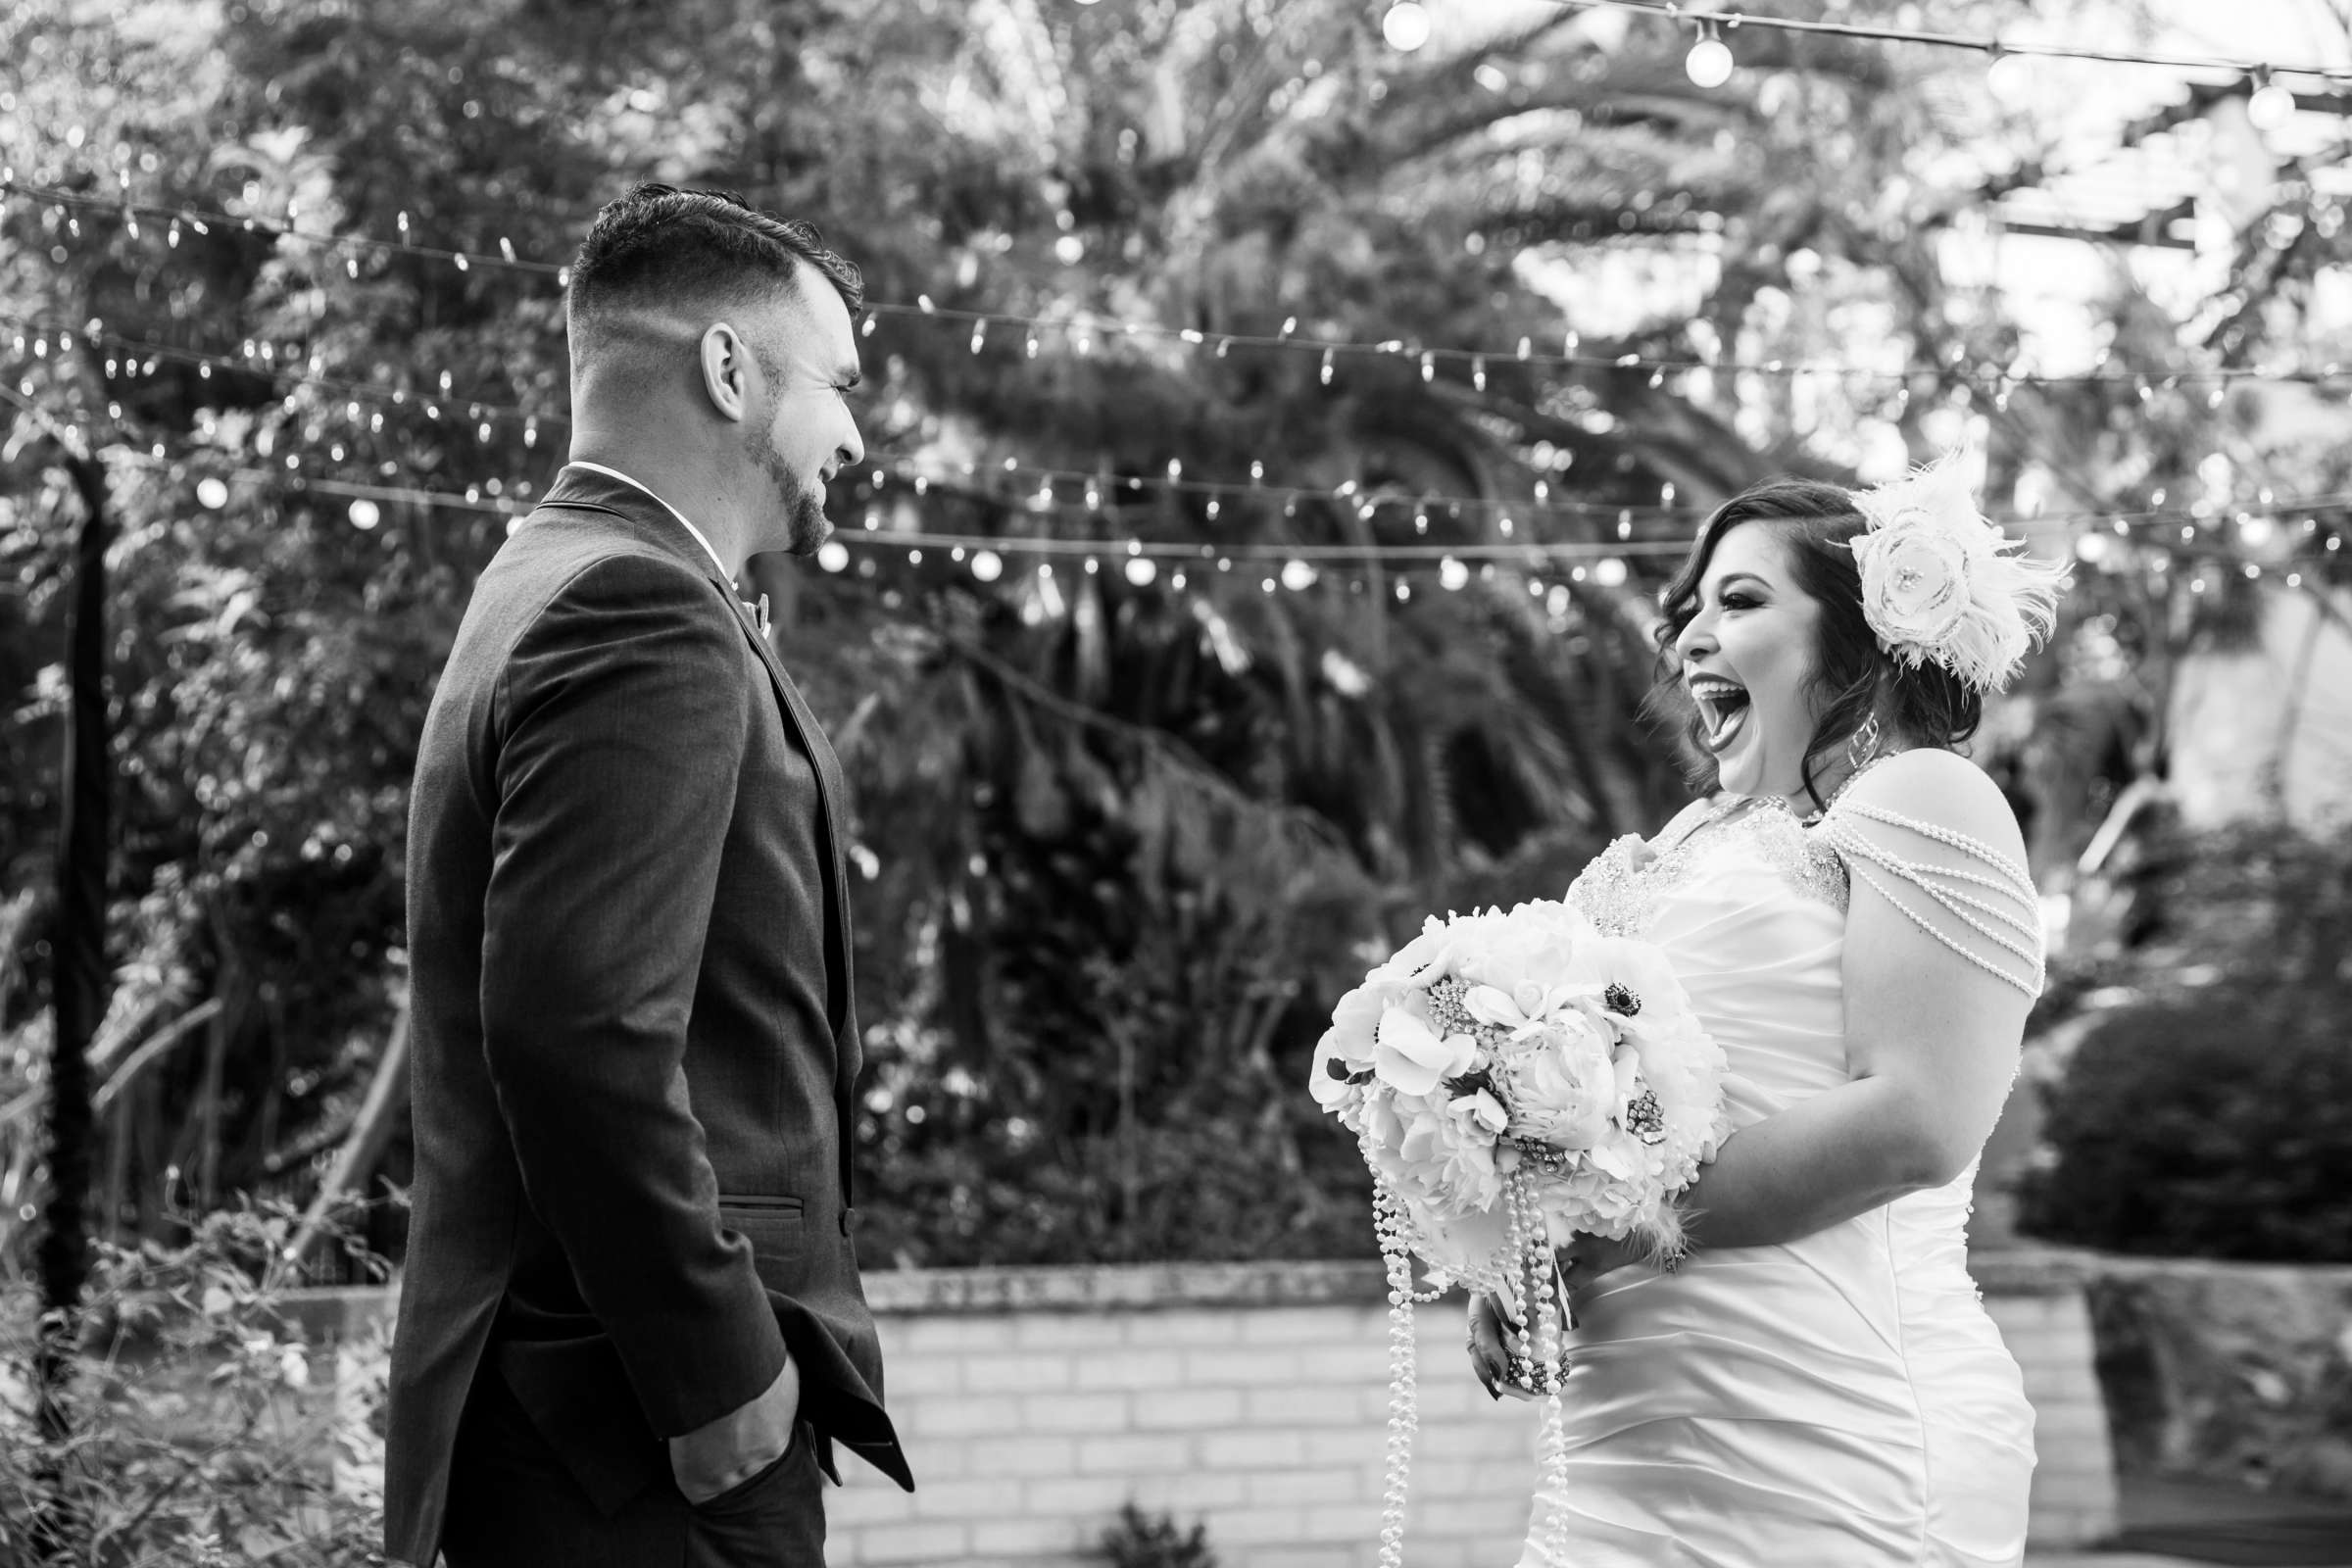 The Prado Wedding coordinated by Breezy Day Weddings, Aalis and Michael Wedding Photo #67 by True Photography